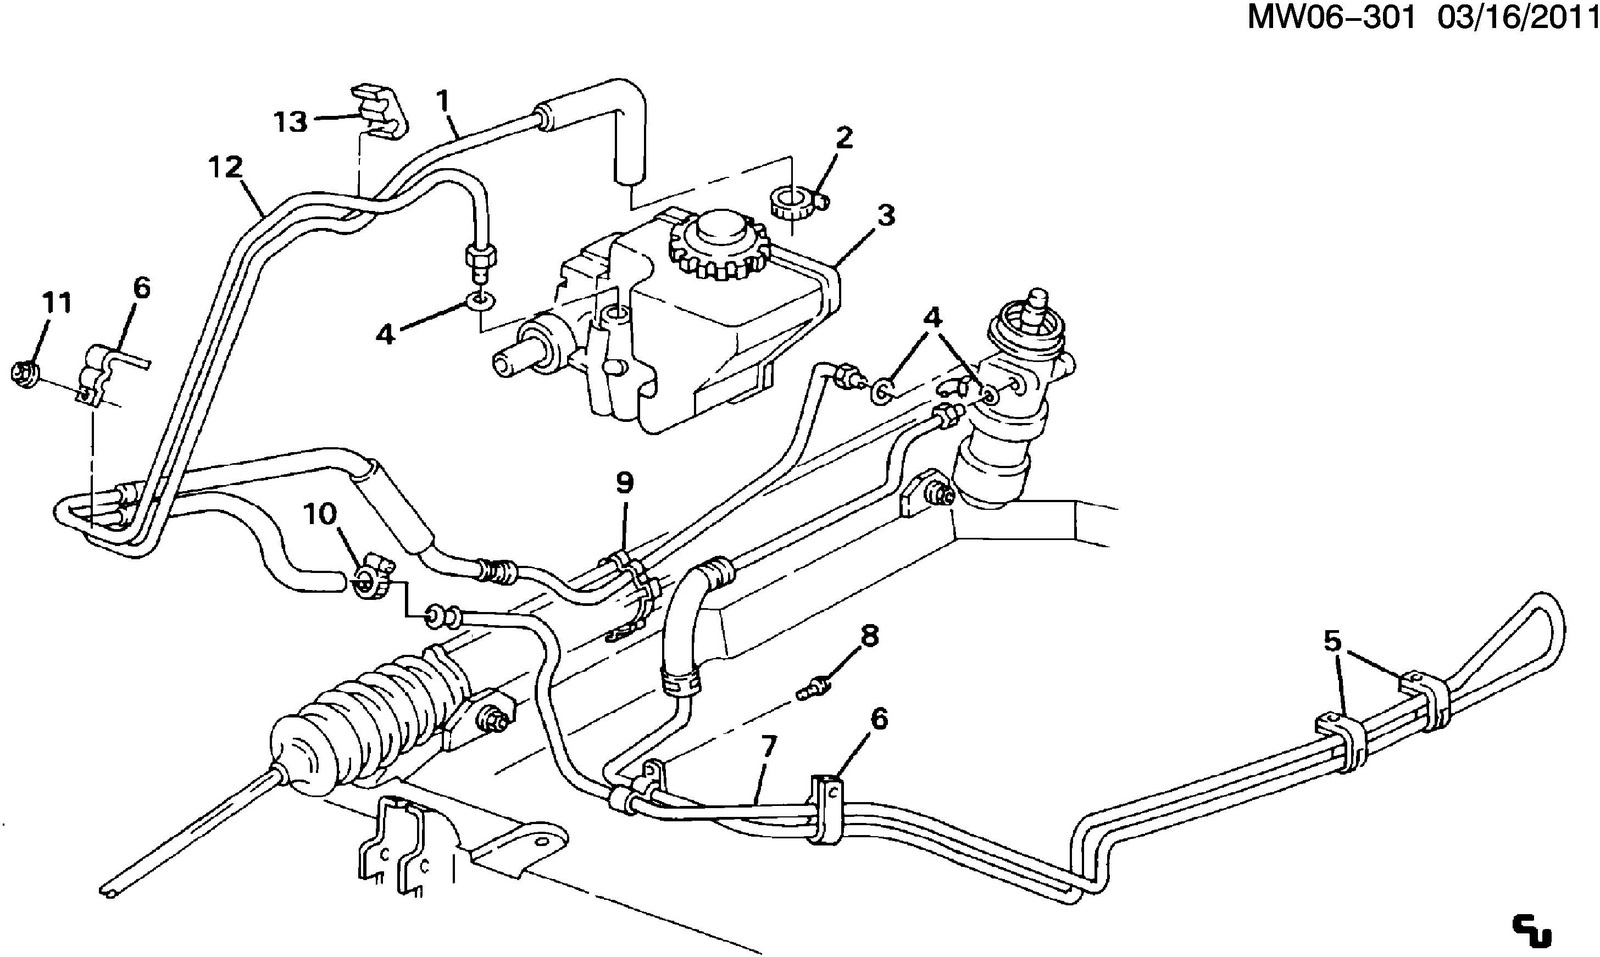 diagram courtesy of westfield sports cars non ducted nose diagram